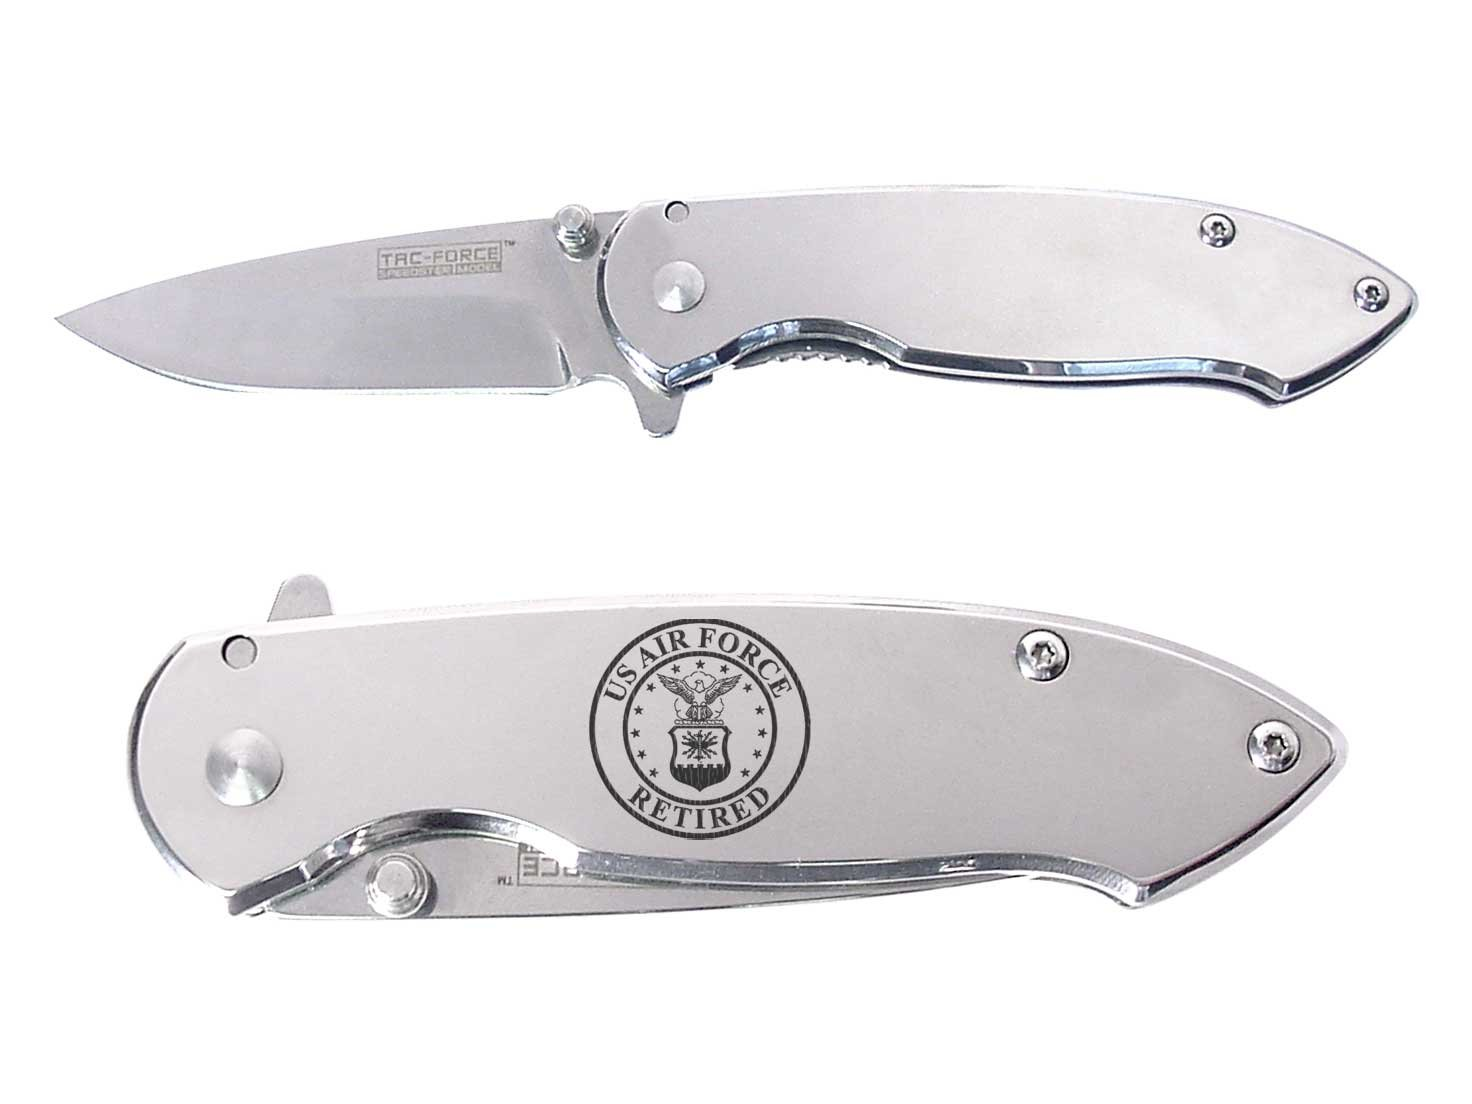 USAF Air Force Round Retired engraved Mirror Finish TAC-Force TF-862C Speedster Executive Model Folding Pocket Knife by NDZ Performance